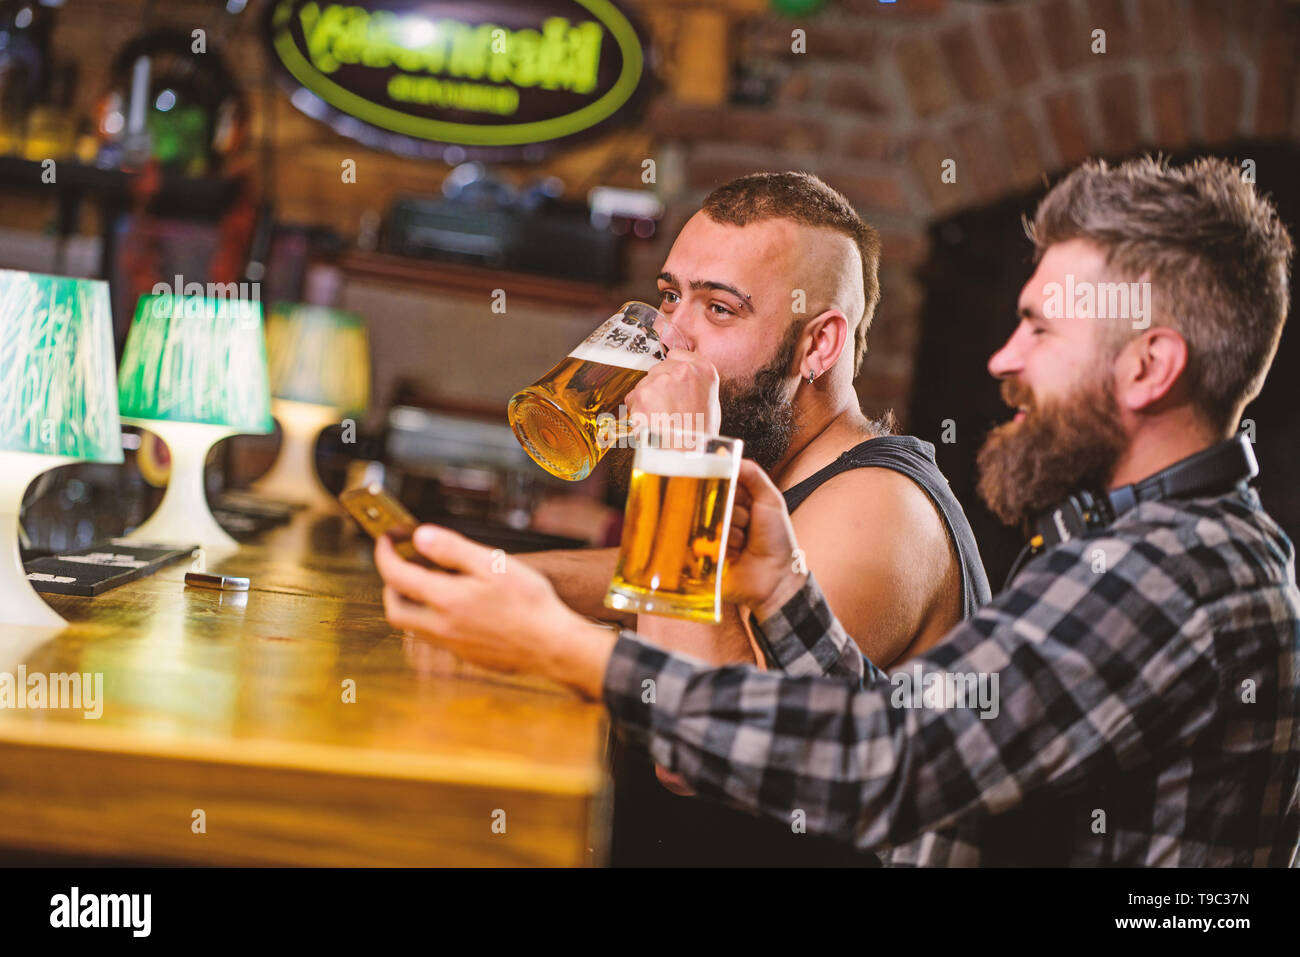 Men drinking beer together. Hipster brutal man drinking beer with friend at bar counter. Men drunk relaxing having fun. Alcohol drinks. Friends relaxing in pub with beer. Refreshing beer concept. - Stock Image